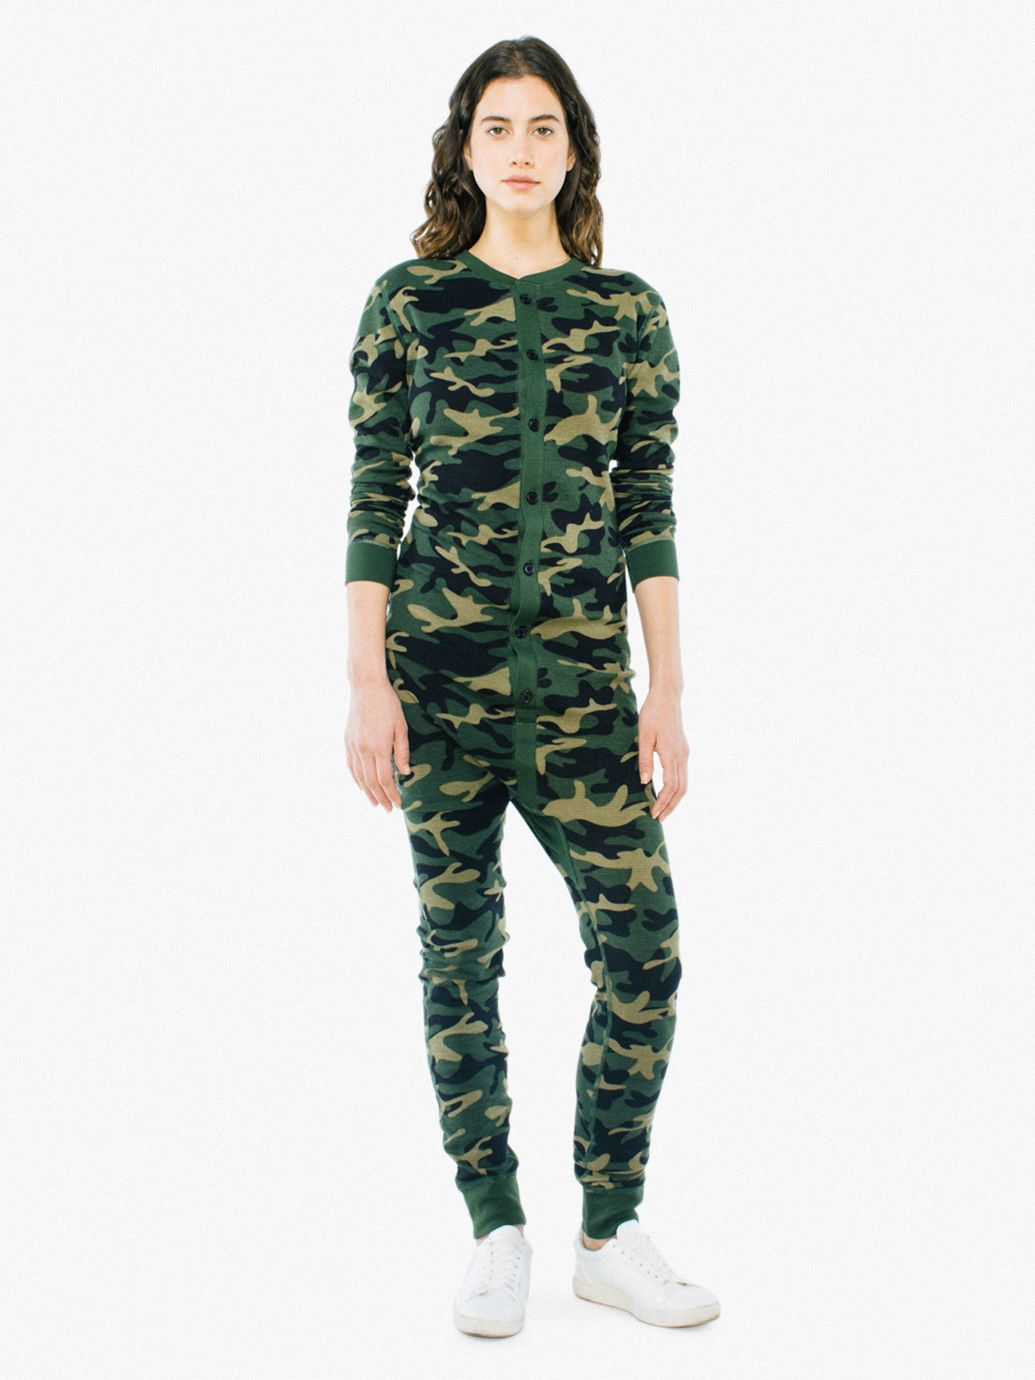 Unisex Baby Thermal One Piece